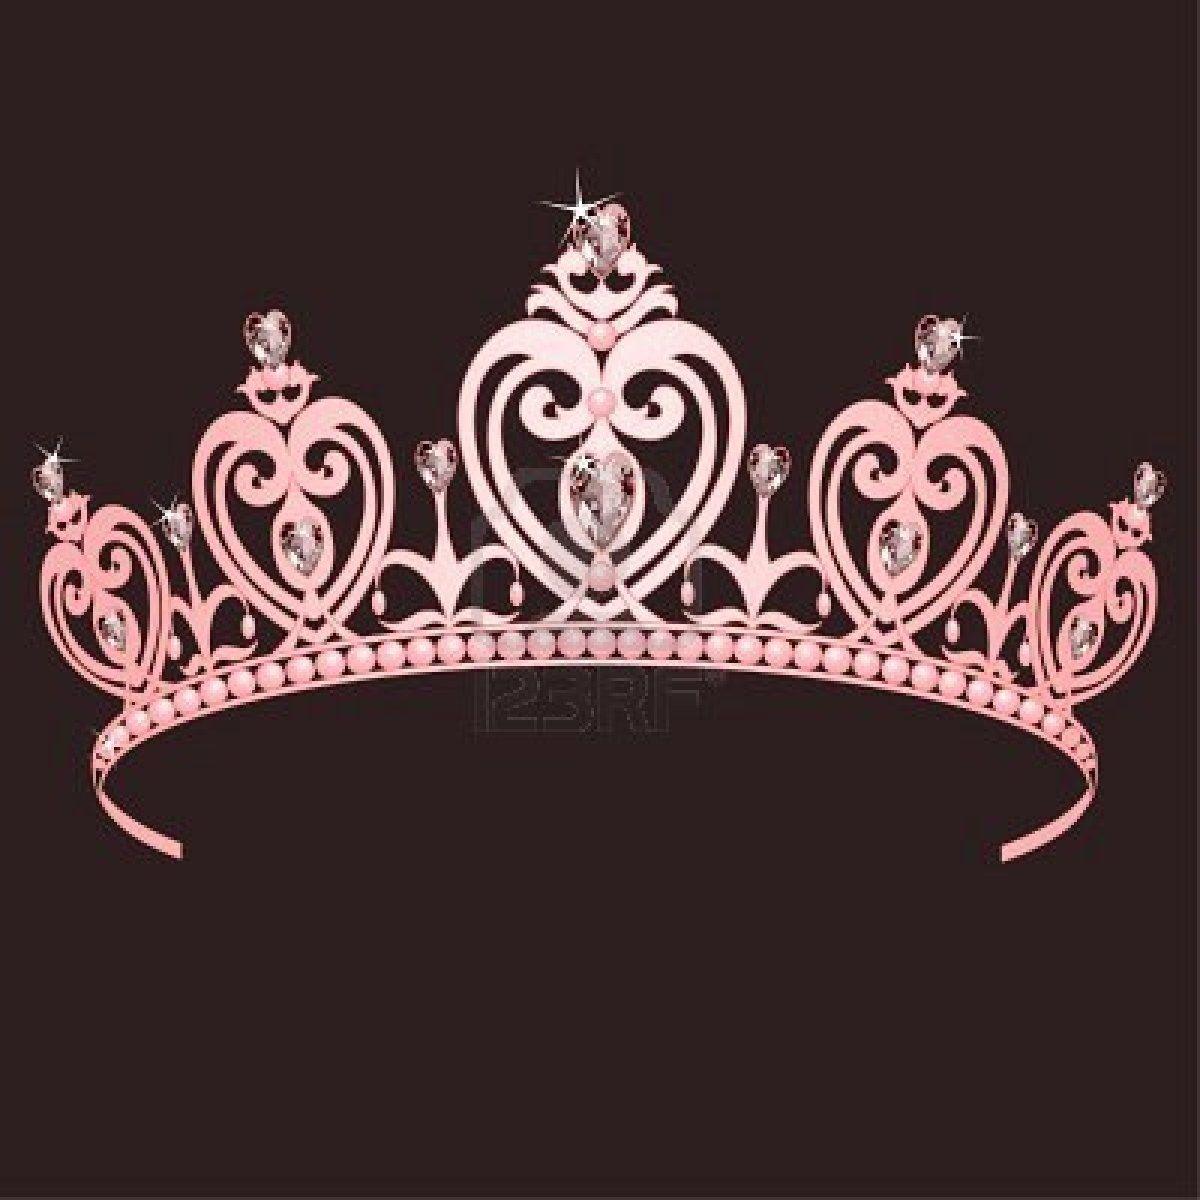 crowns background wallpaper - photo #41